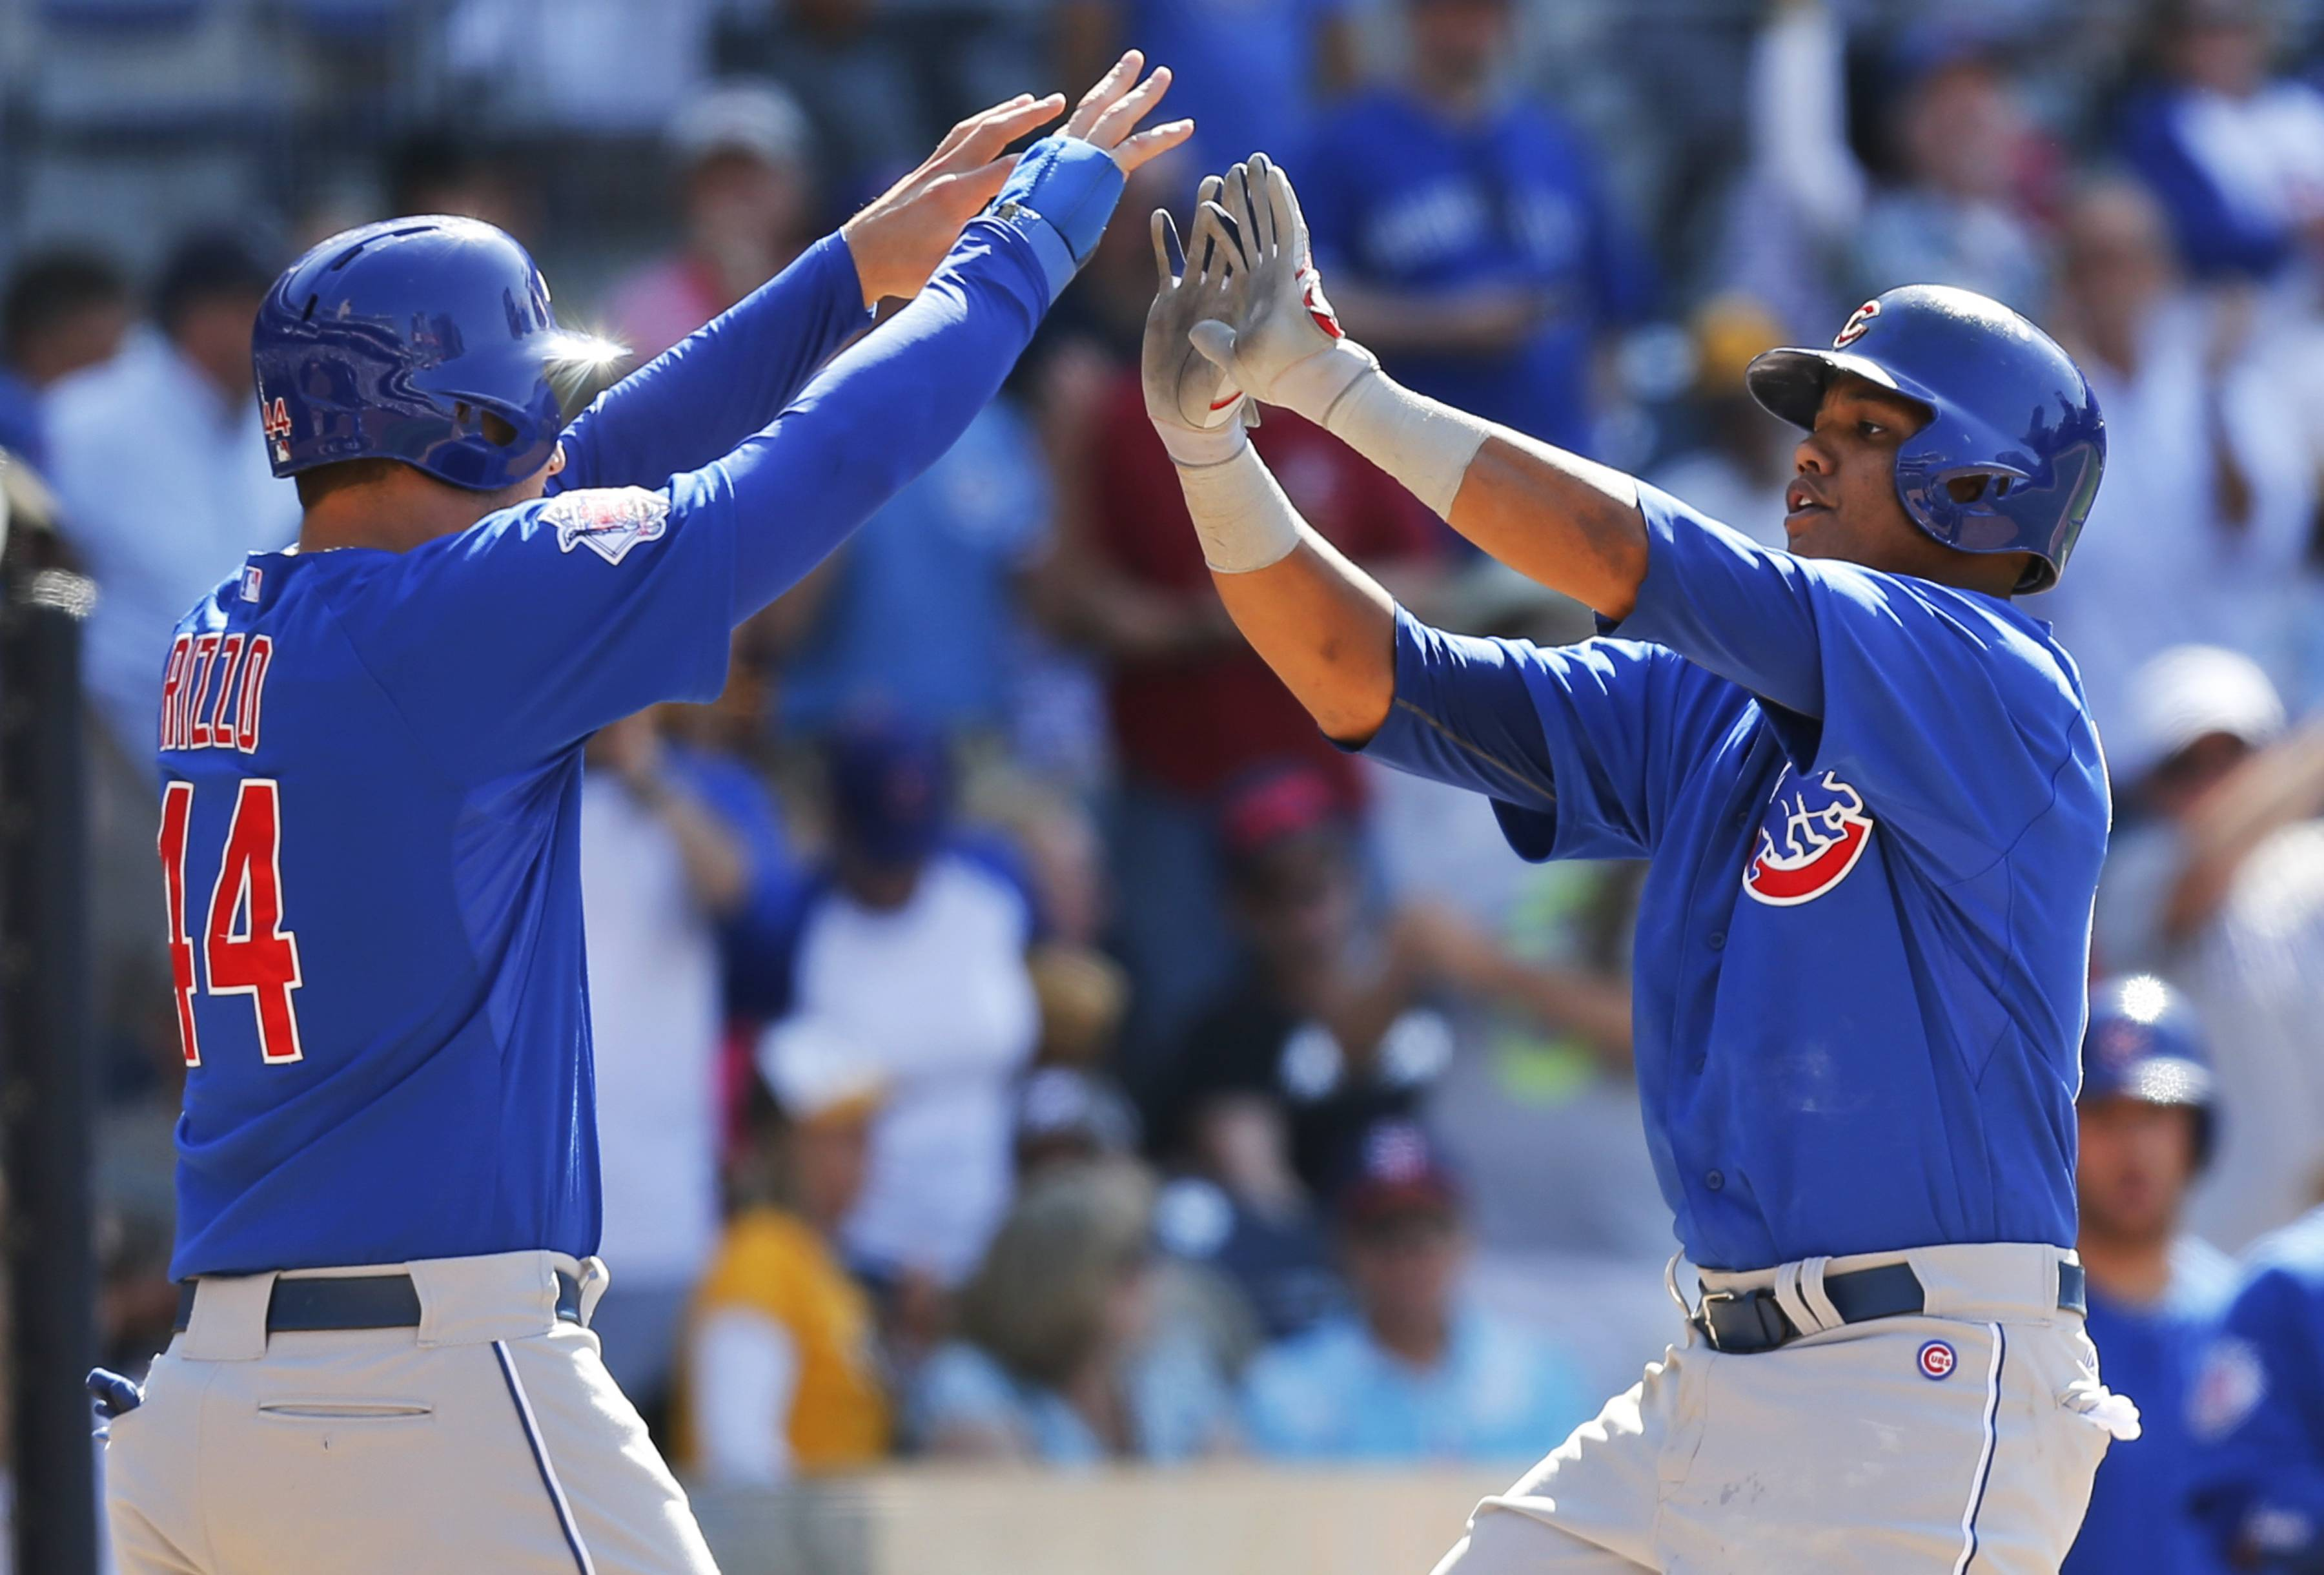 When top players Anthony Rizzo, left and Starlin Castro aren't hitting, it's a struggle for the Cubs to score runs.